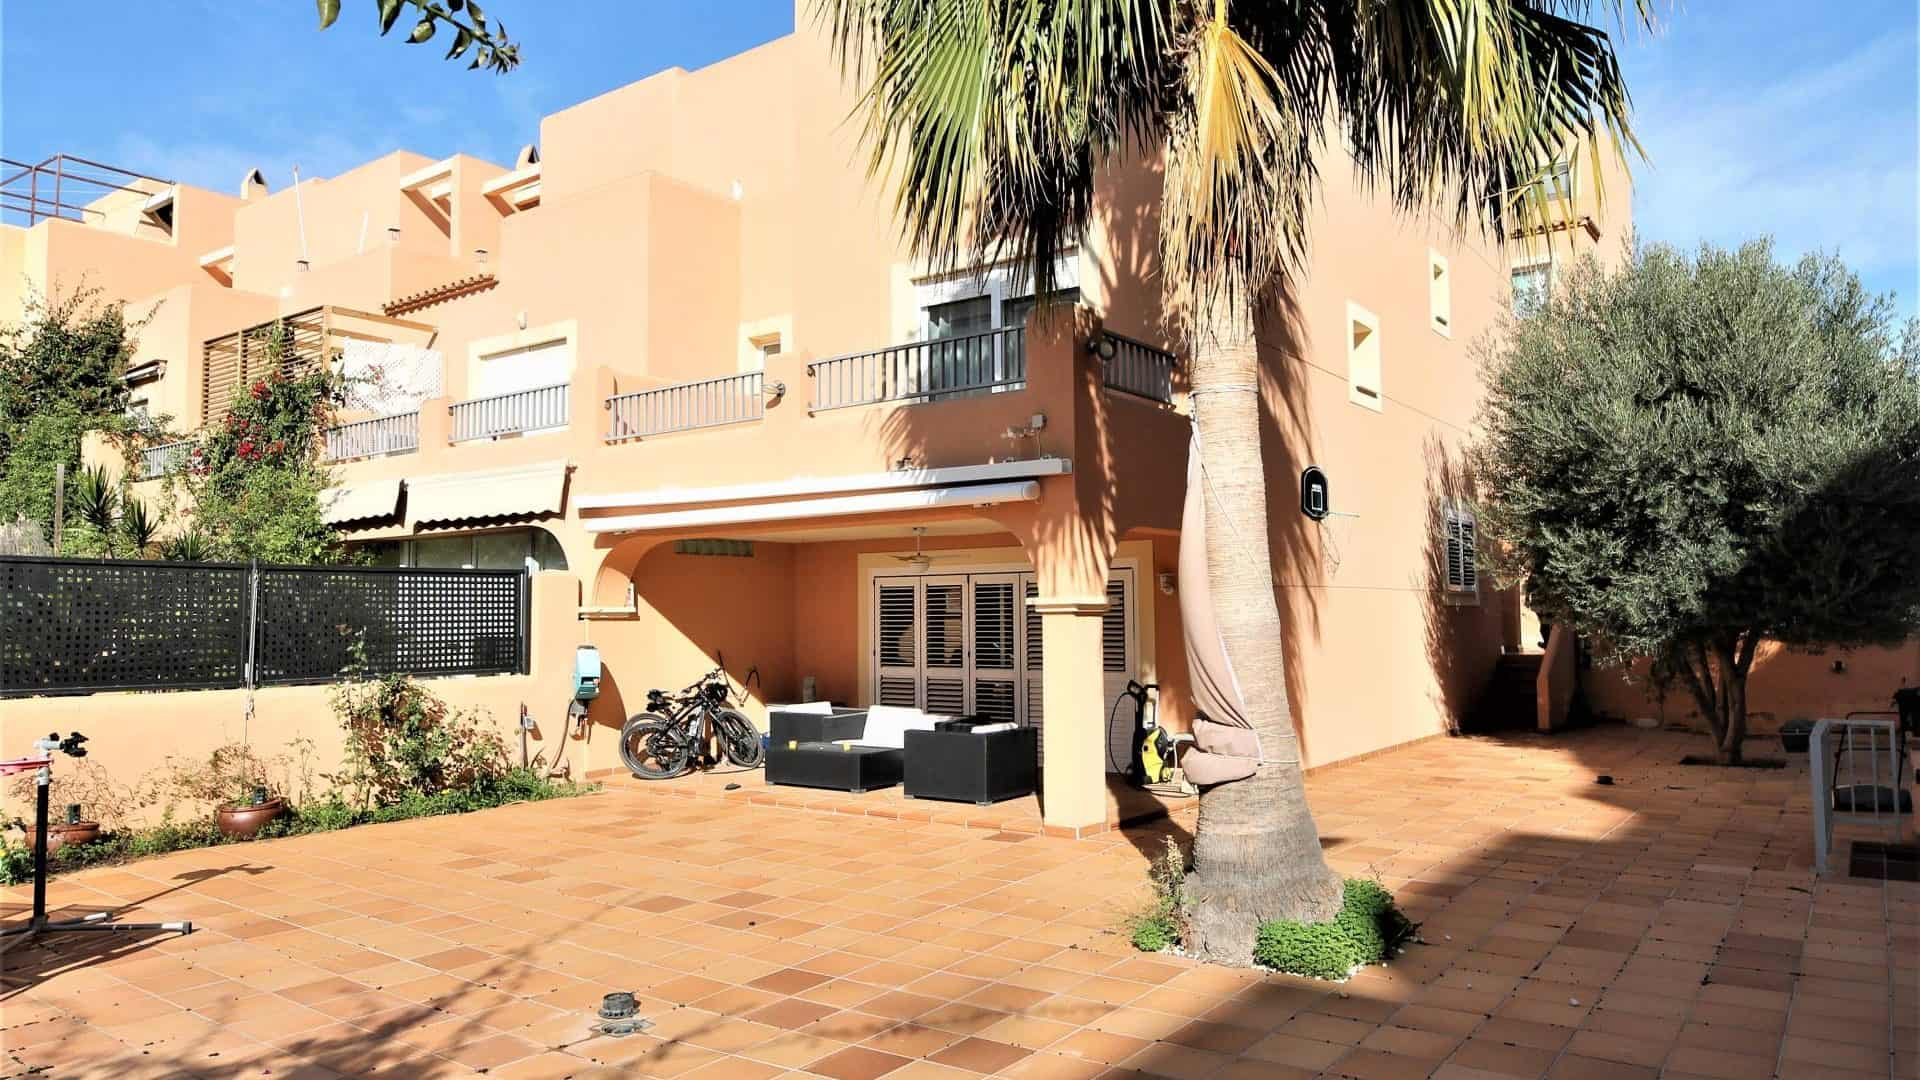 Purshase a Triplex Apartment in Can Misses Ibiza